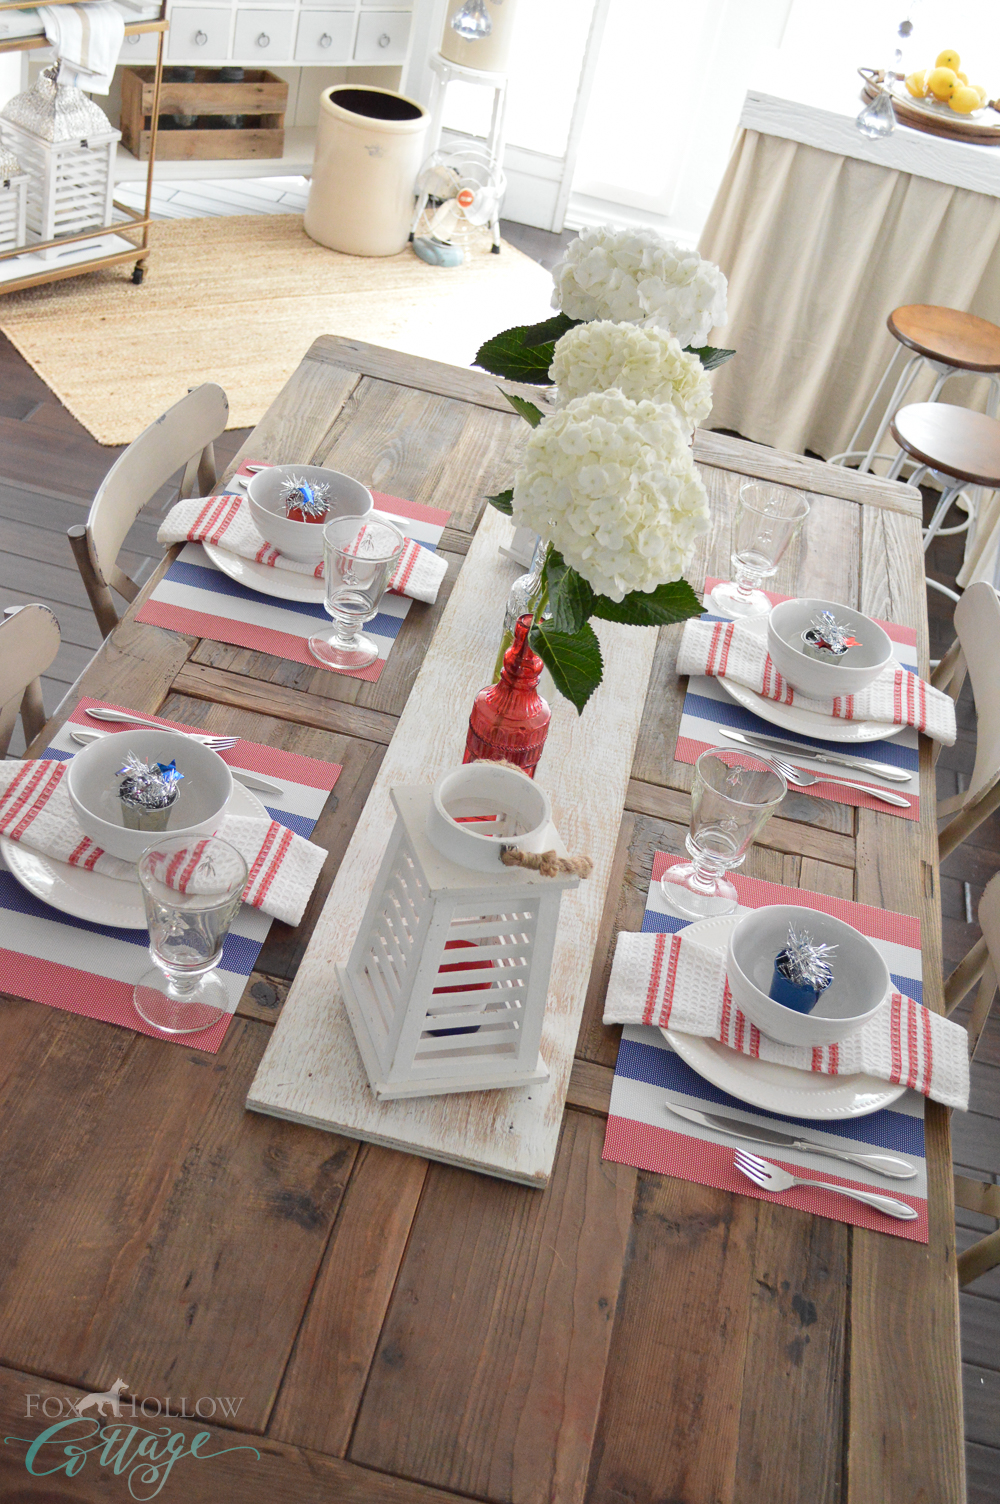 DIY Red, White and Blue Patriotic Farm Table with Wood Runner - 4th of July